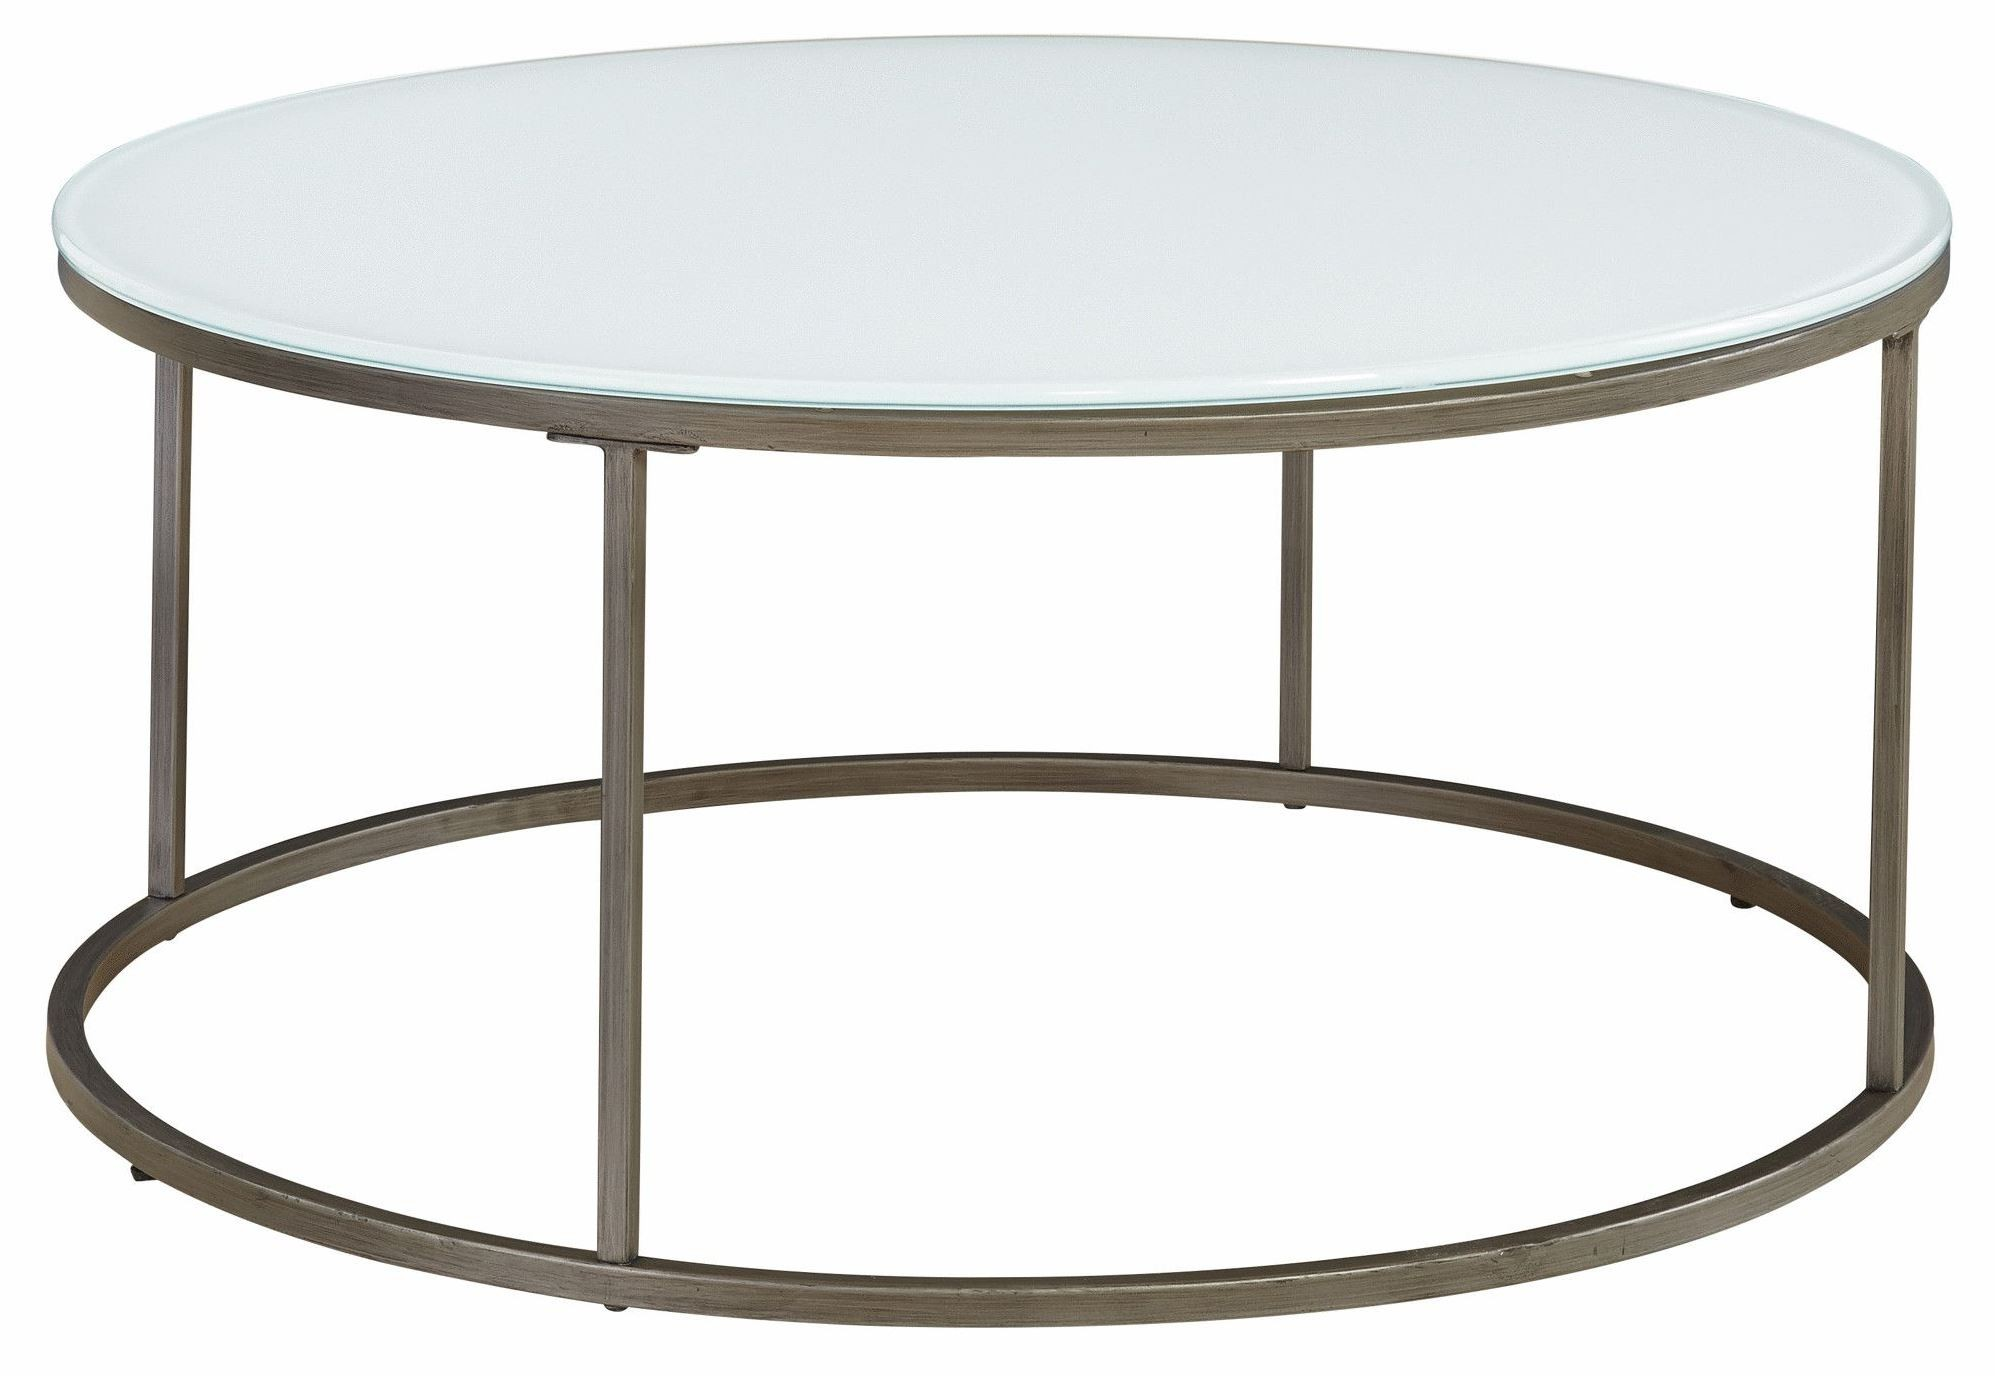 Alana Frosted Glass Top Round Coffee Table 836 075 Glf 075 Casana